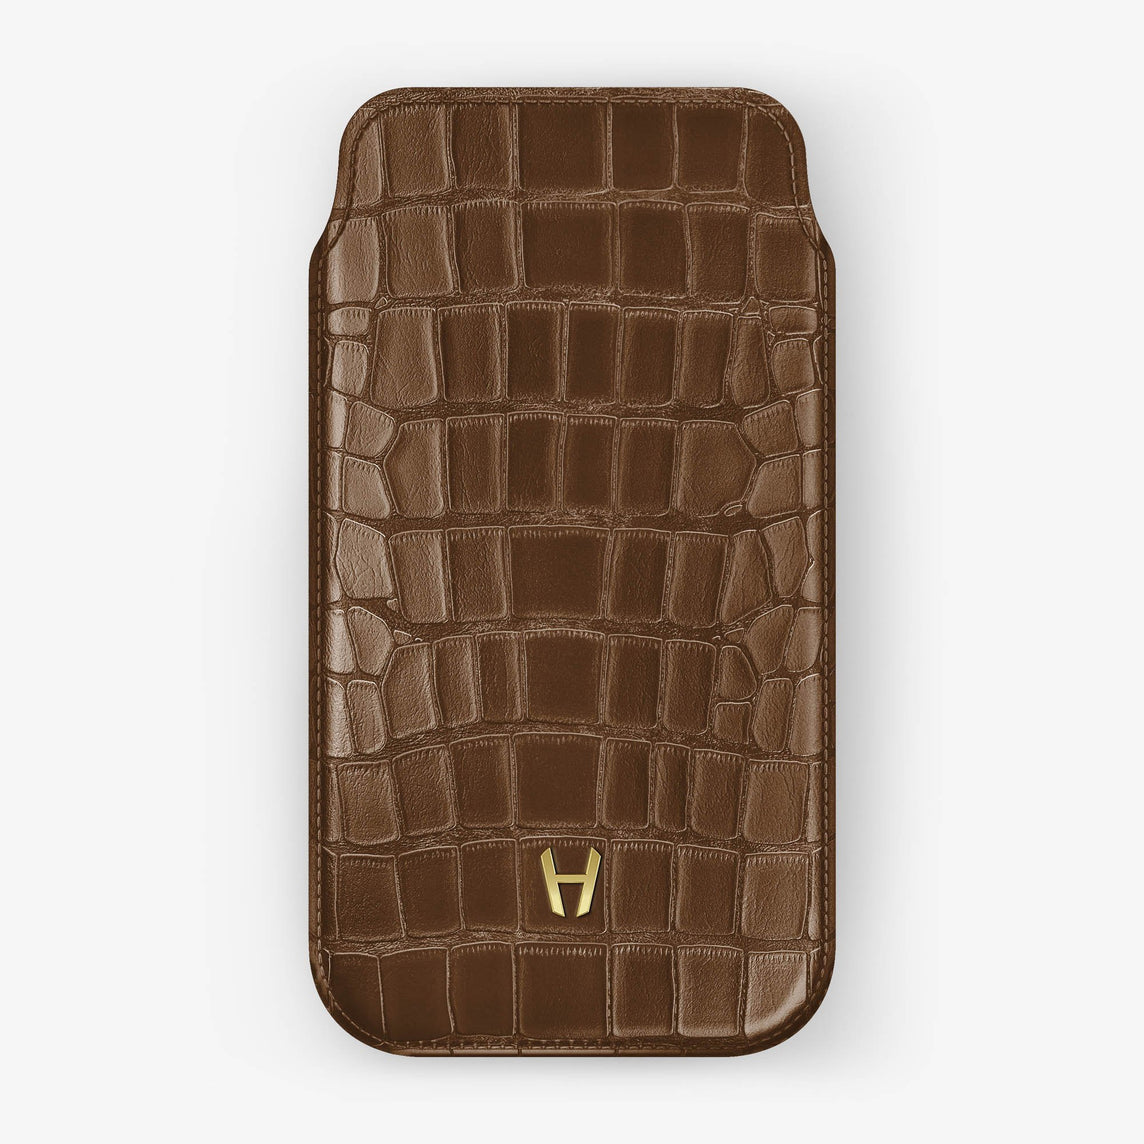 Alligator [iPhone Sleeve Case] [model:iphone-xr-case] [colour:brown] [finishing:yellow-gold]